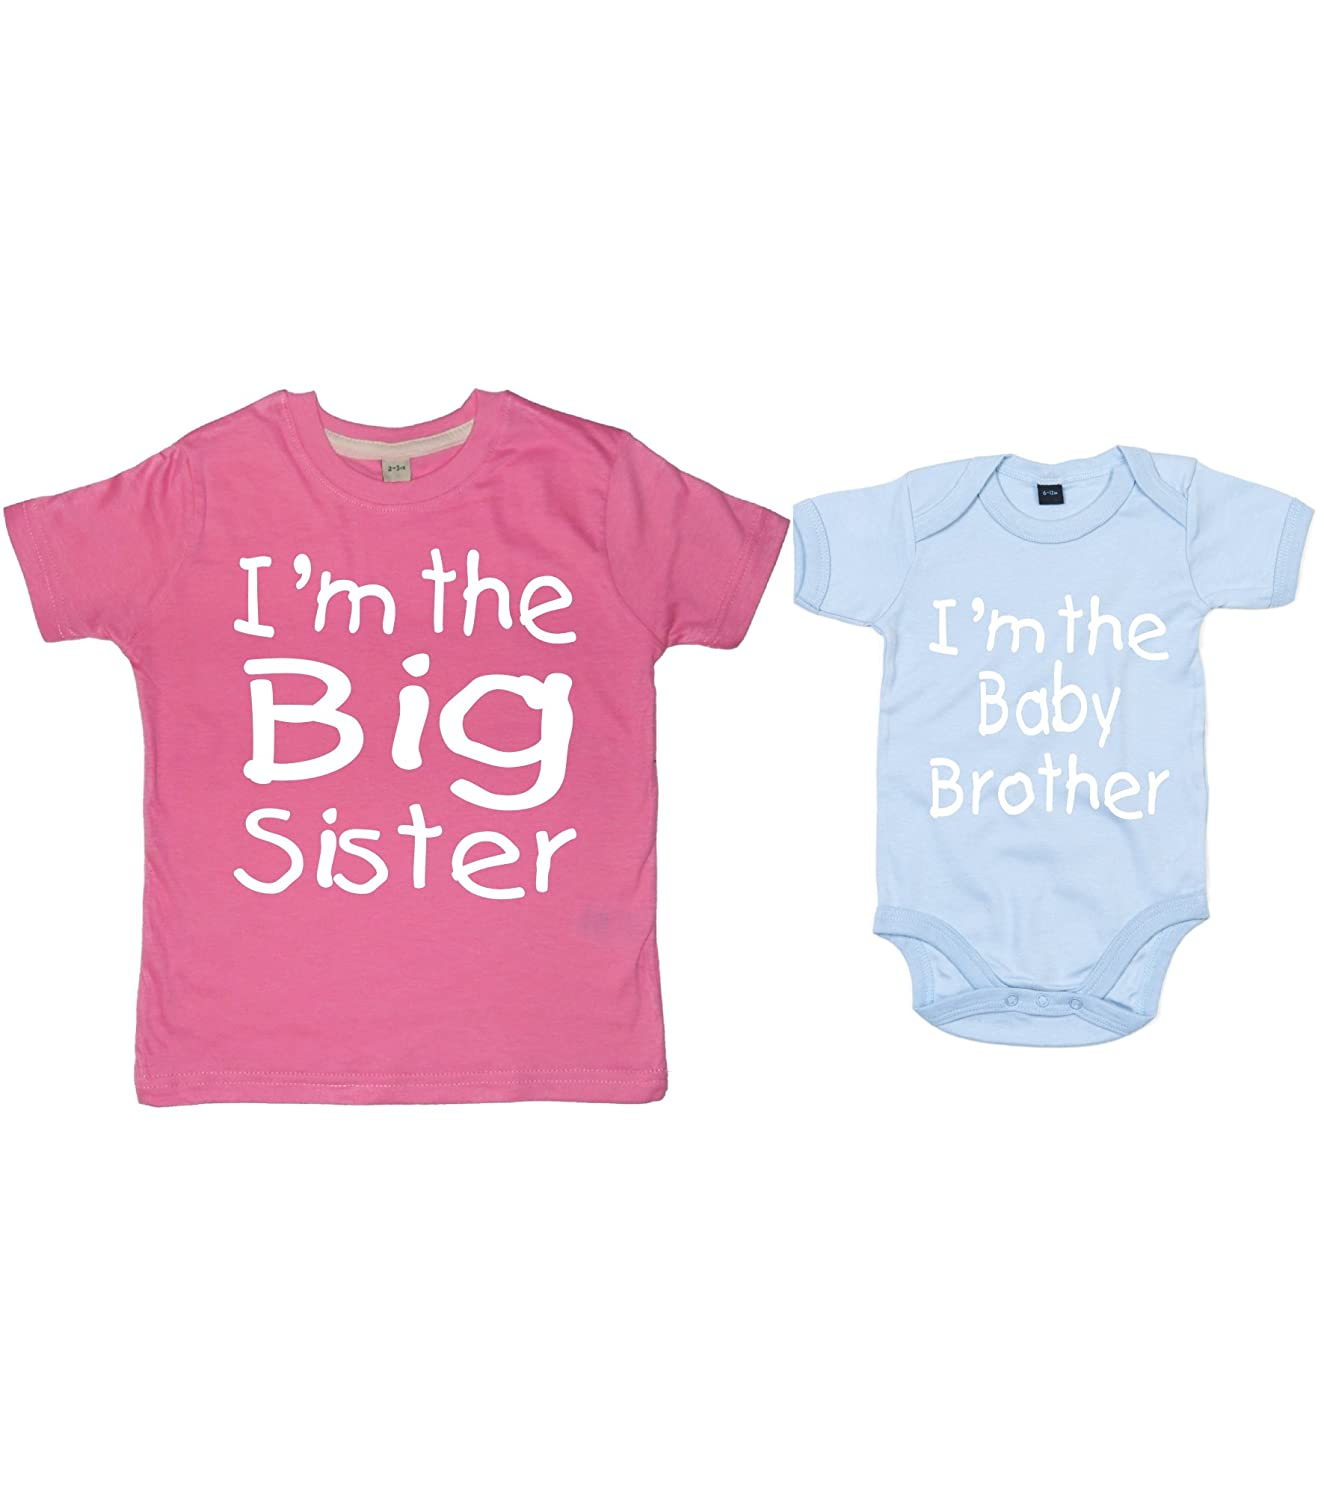 Perfect Edward Sinclair MATCHING BIG SISTER T-SHIRT AND BABY BROTHER  LS77